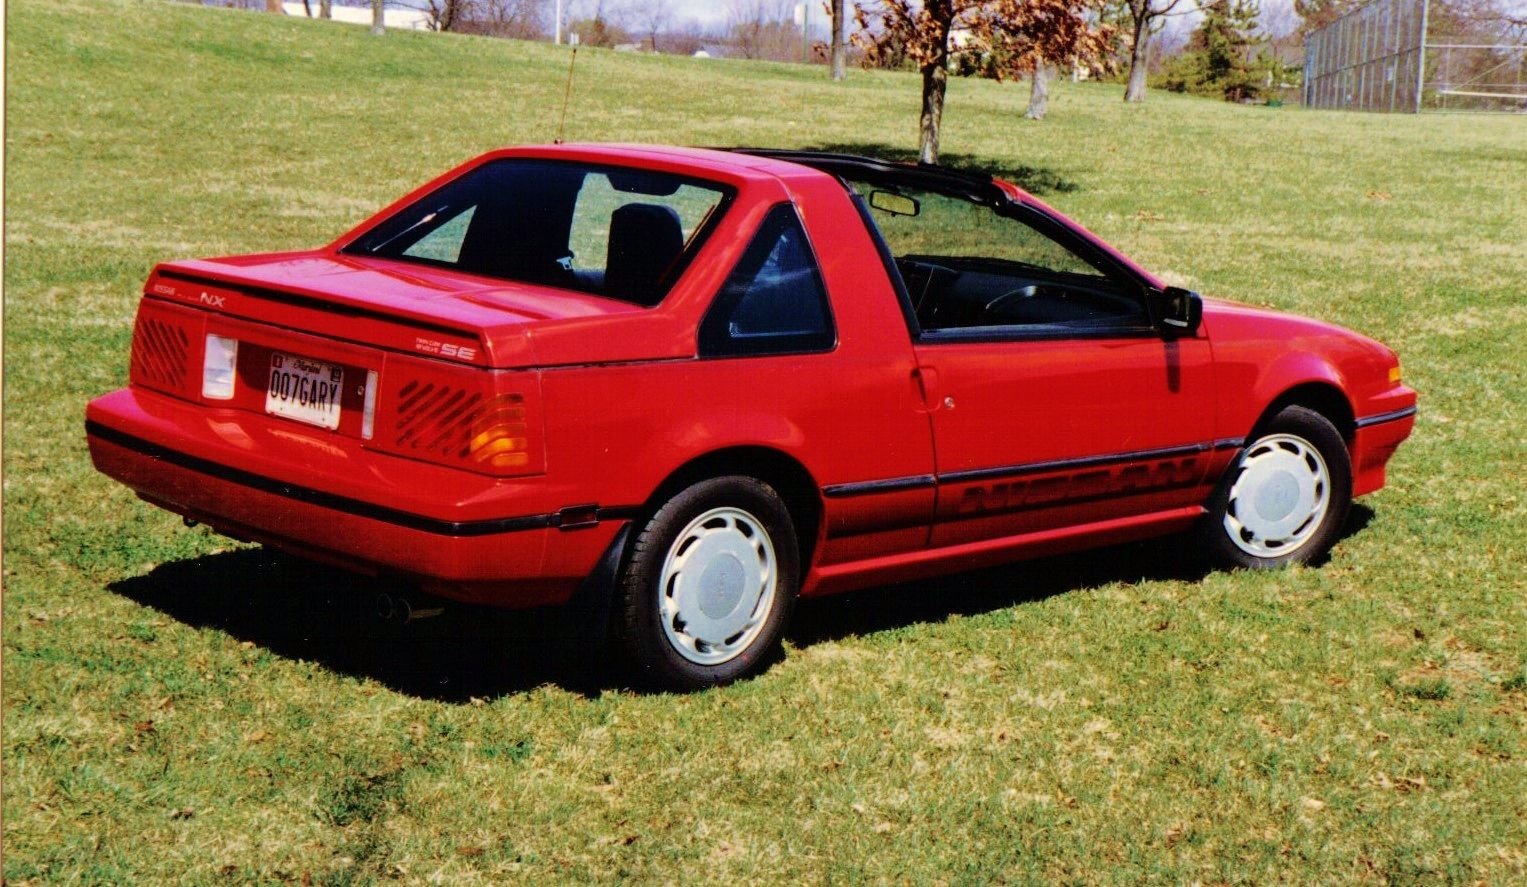 1987 nissan pulsar nx se purchased new in 1987 with removable rear hatch and t